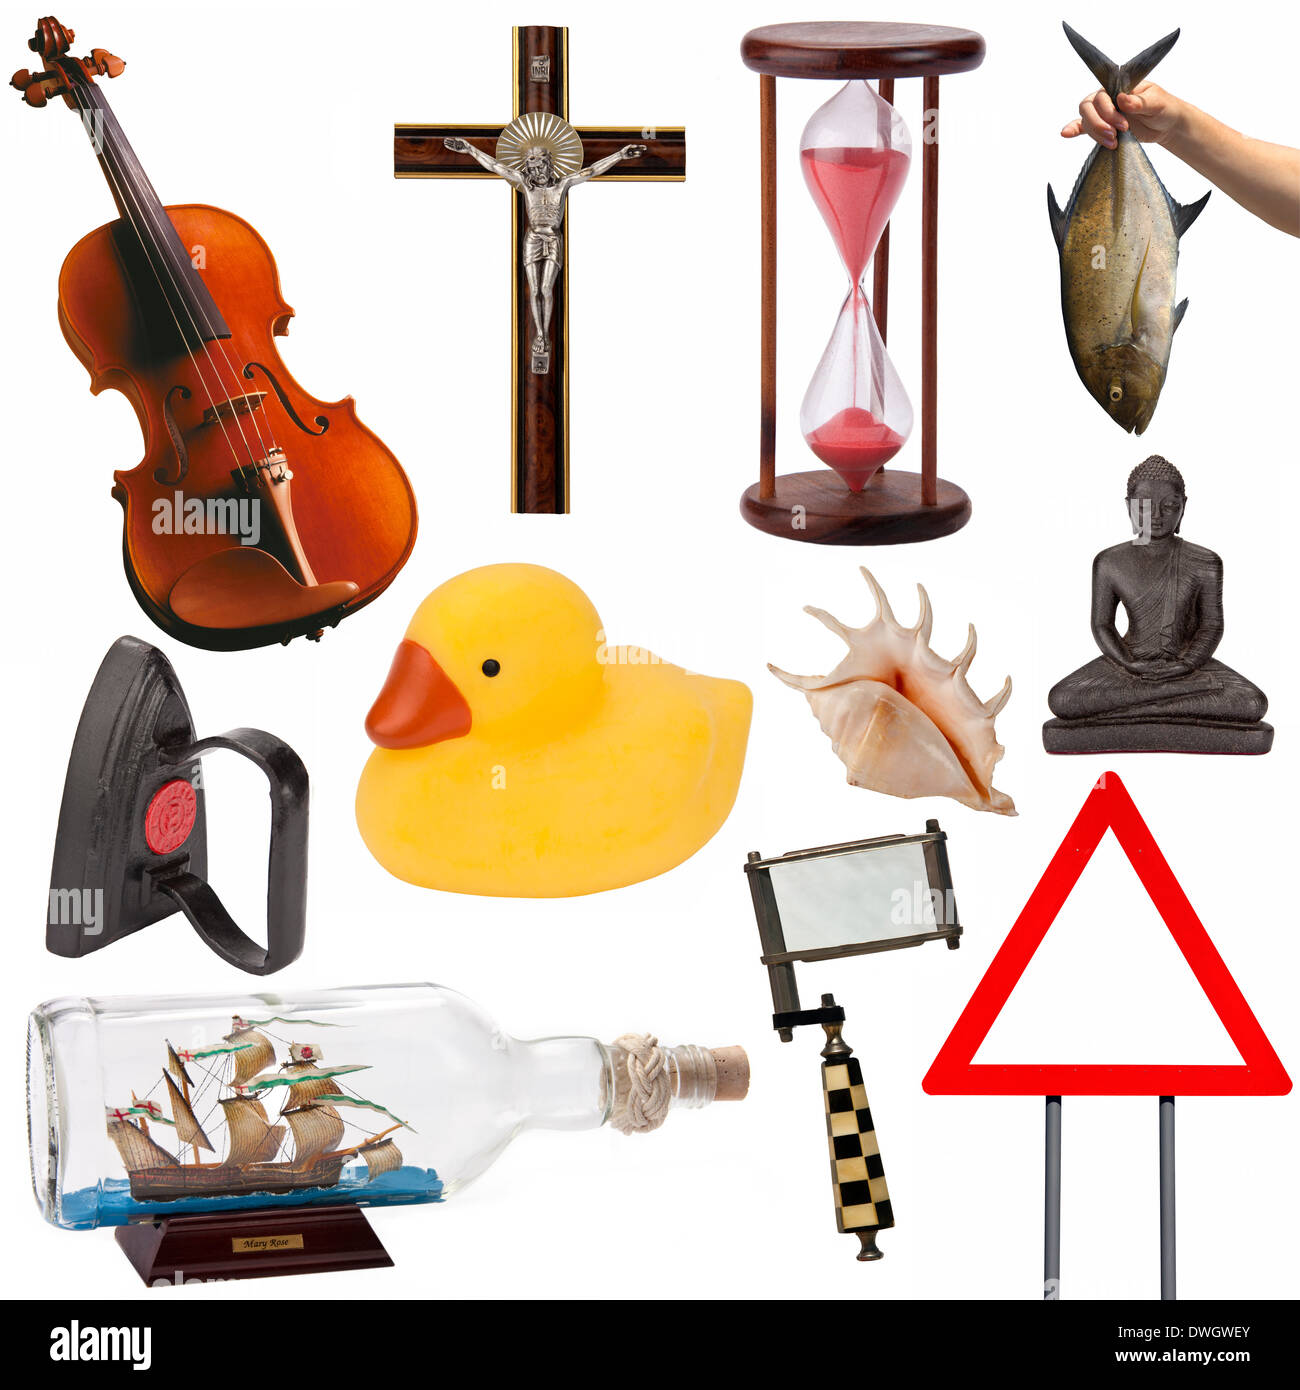 A selection of objects, items, ideas, and concepts for cutout (isolated on a white background). - Stock Image